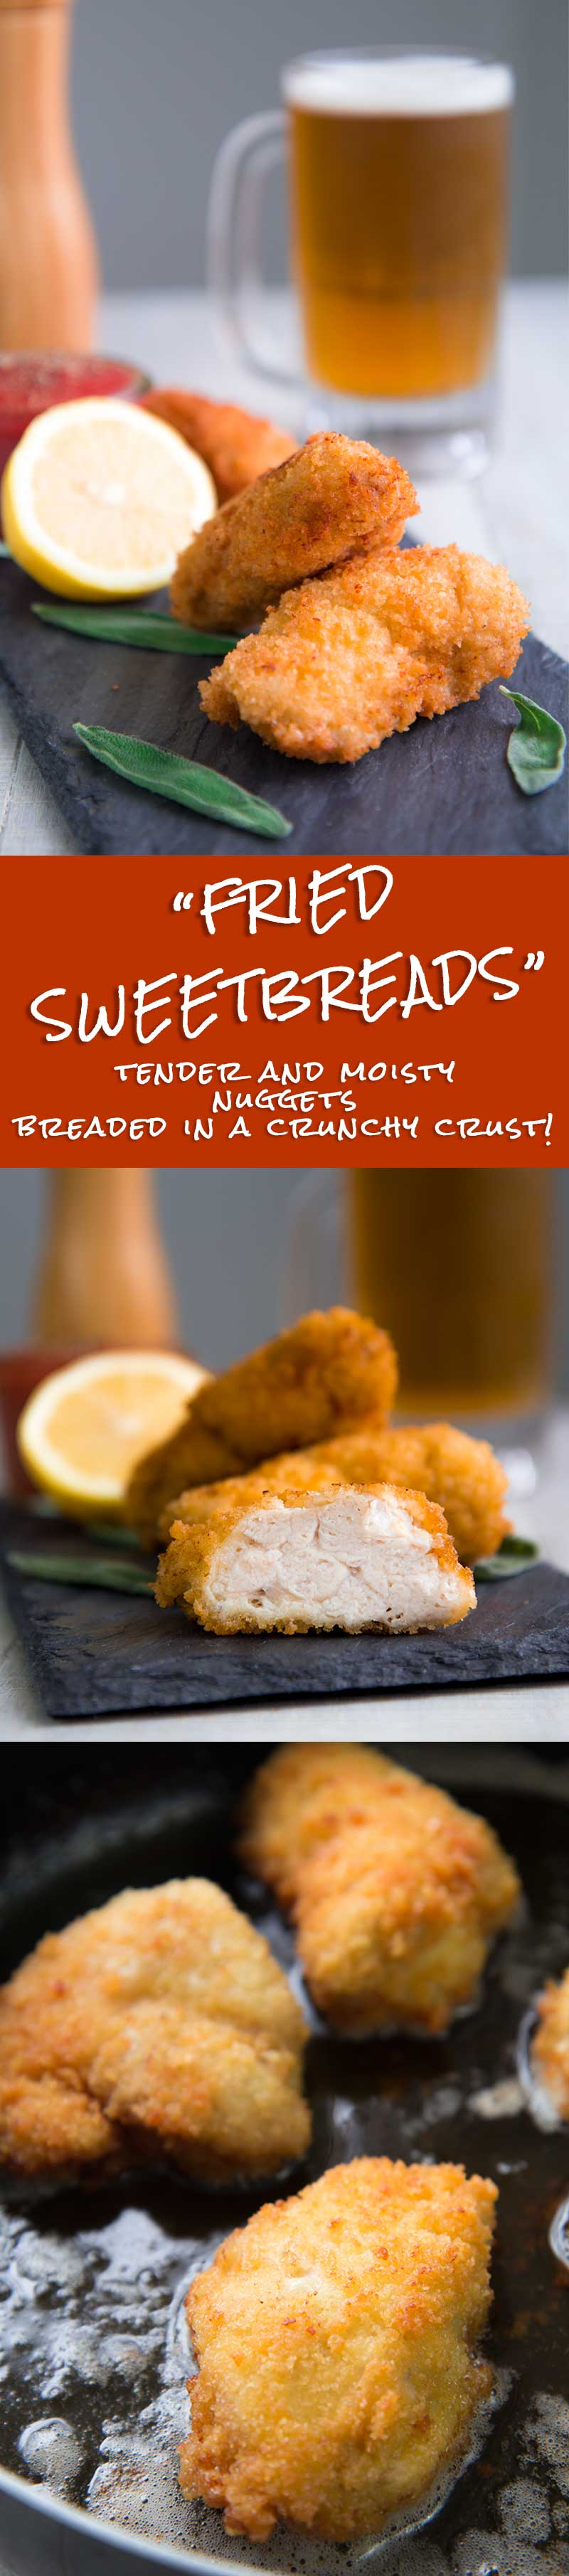 SWEETBREADS RECIPE breaded and fried Italian style